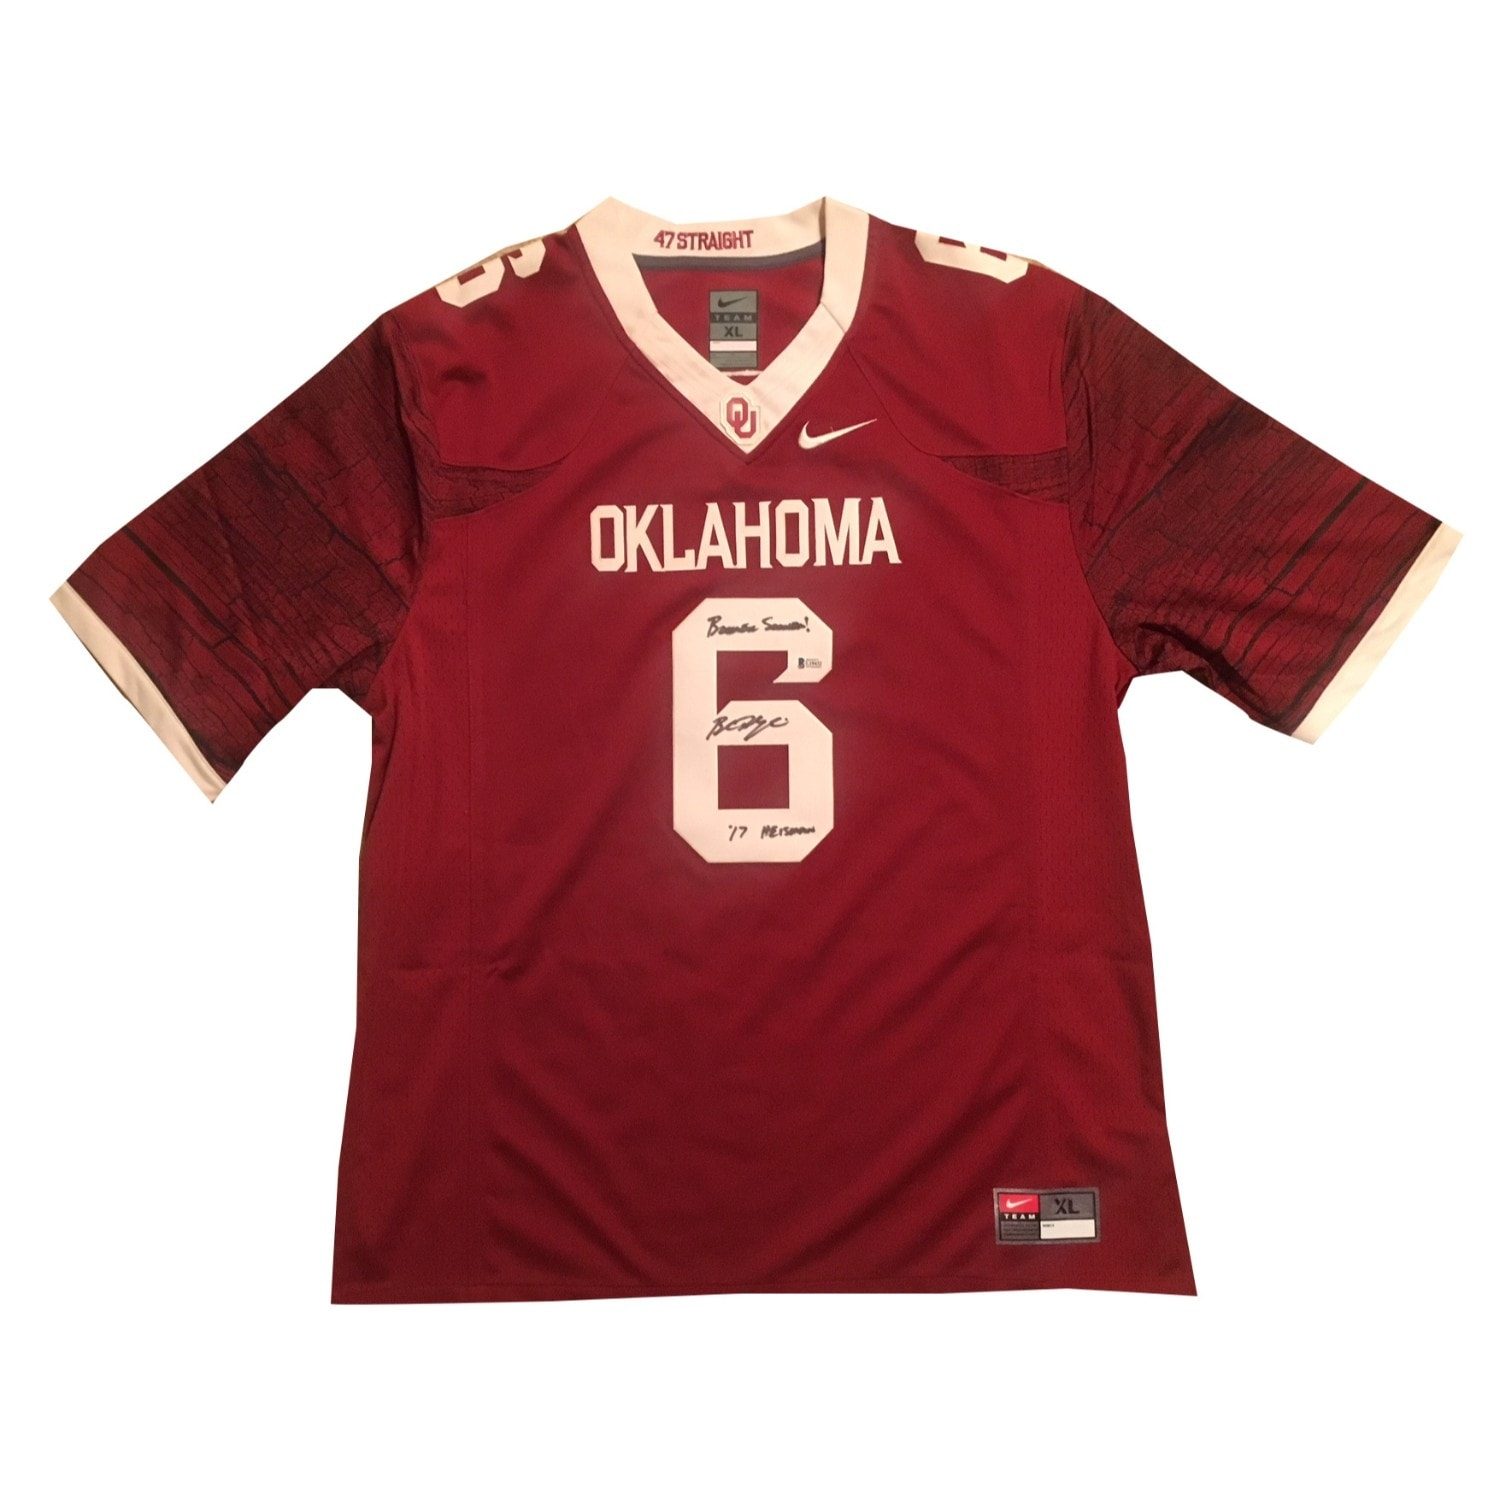 new concept 91c15 eac9a Baker Mayfield Autographed Oklahoma Sooners Signed Nike Football Jersey  BOOMER SOONER 2017 HEISMAN